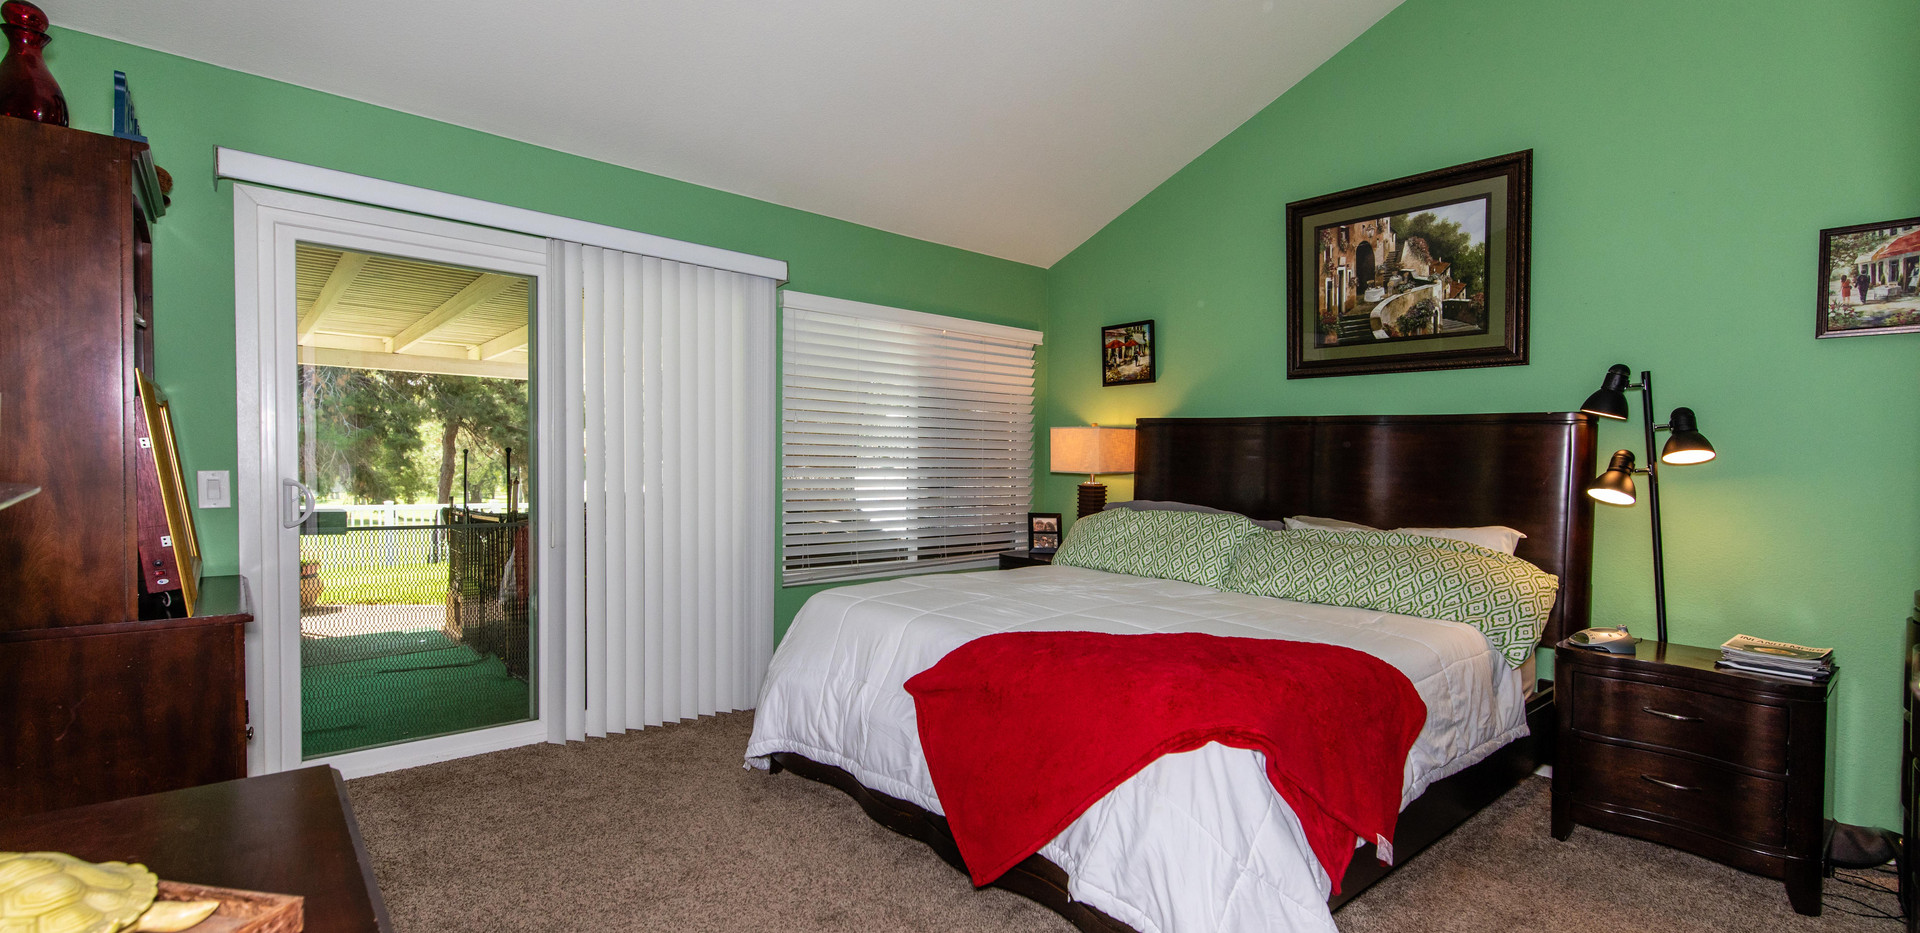 7300 Linares Ave-int-20.jpg